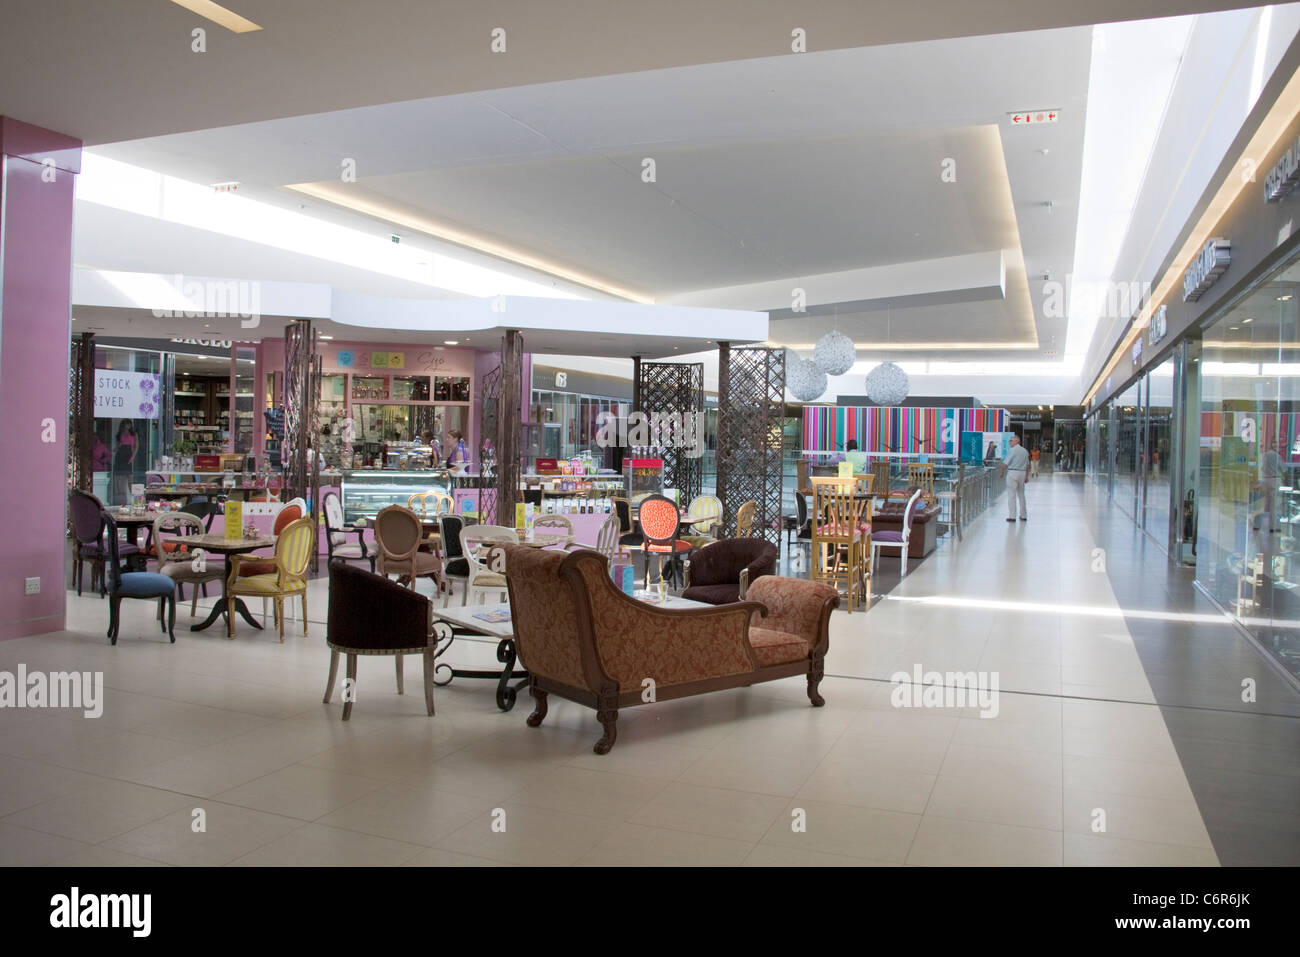 Furniture display in an upmarket shopping mall in Morningside, Sandton - Stock Image